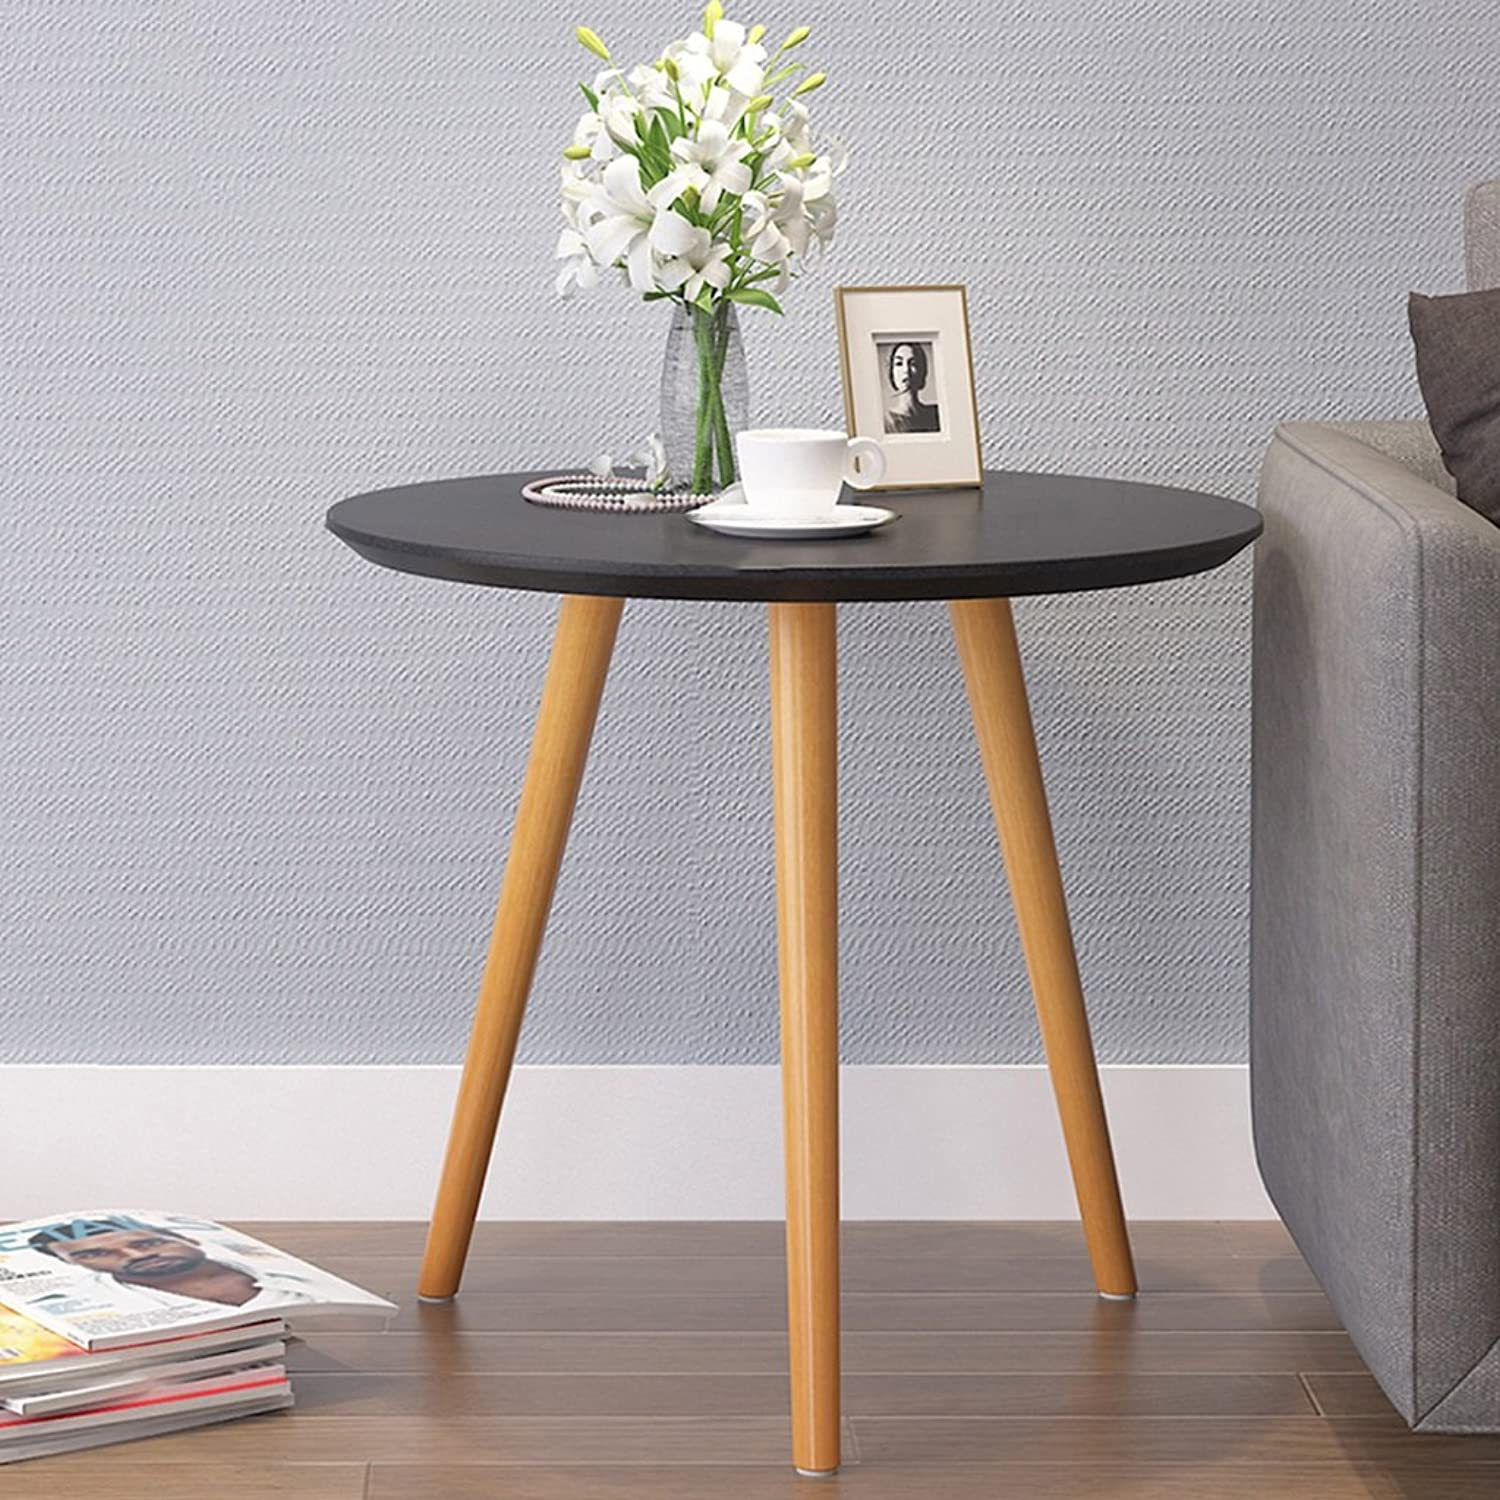 Simple Round Table Solid Wood Sofa Side Scandinavian Simple Balcony Coffee Table (color   Black, Size   48cm 18.9inch)